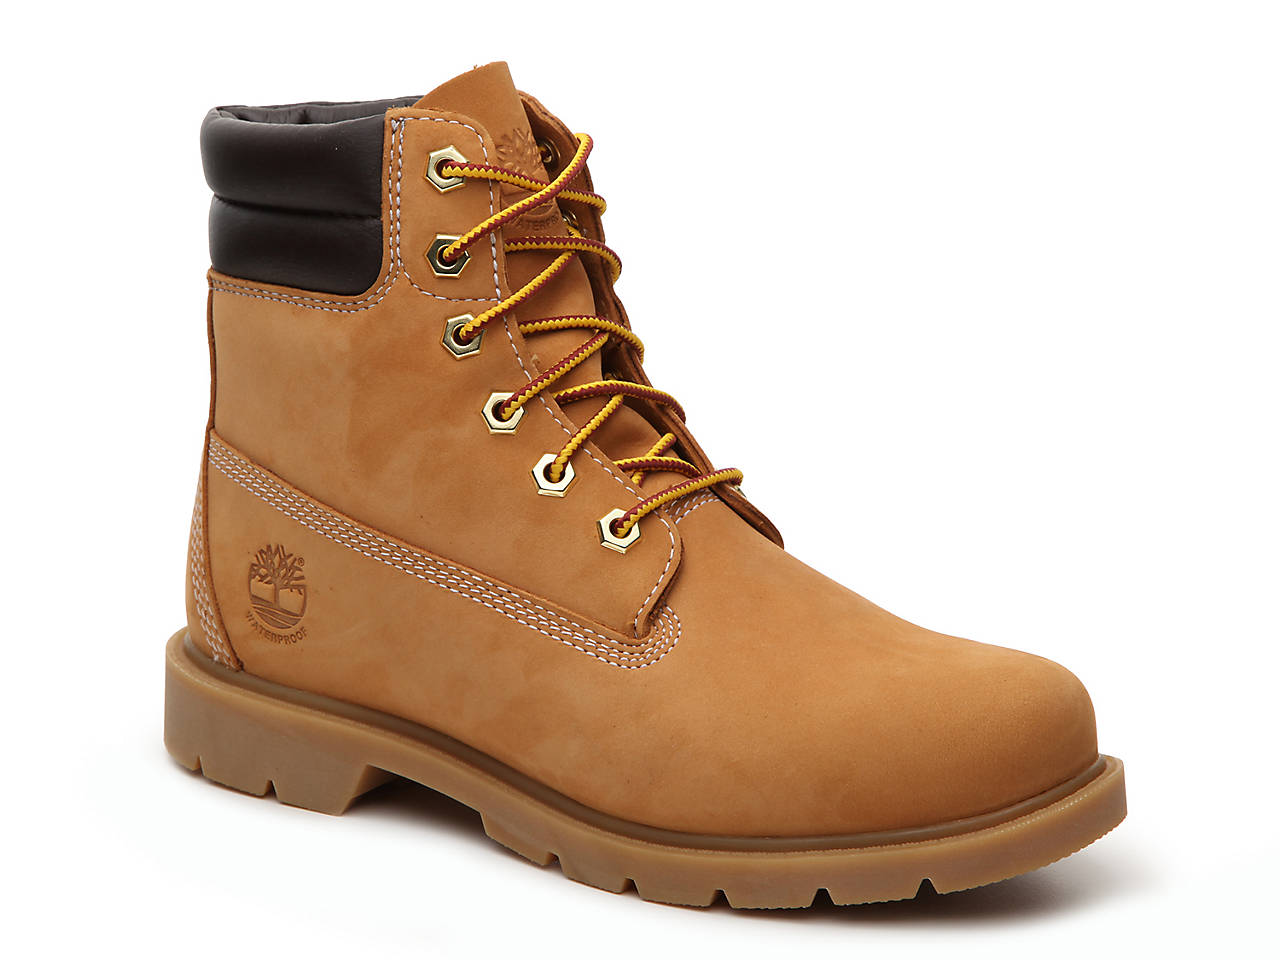 Women's Timberland Linden Woods Boots cheap sale outlet store clearance wholesale price free shipping professional M8qvsKfed